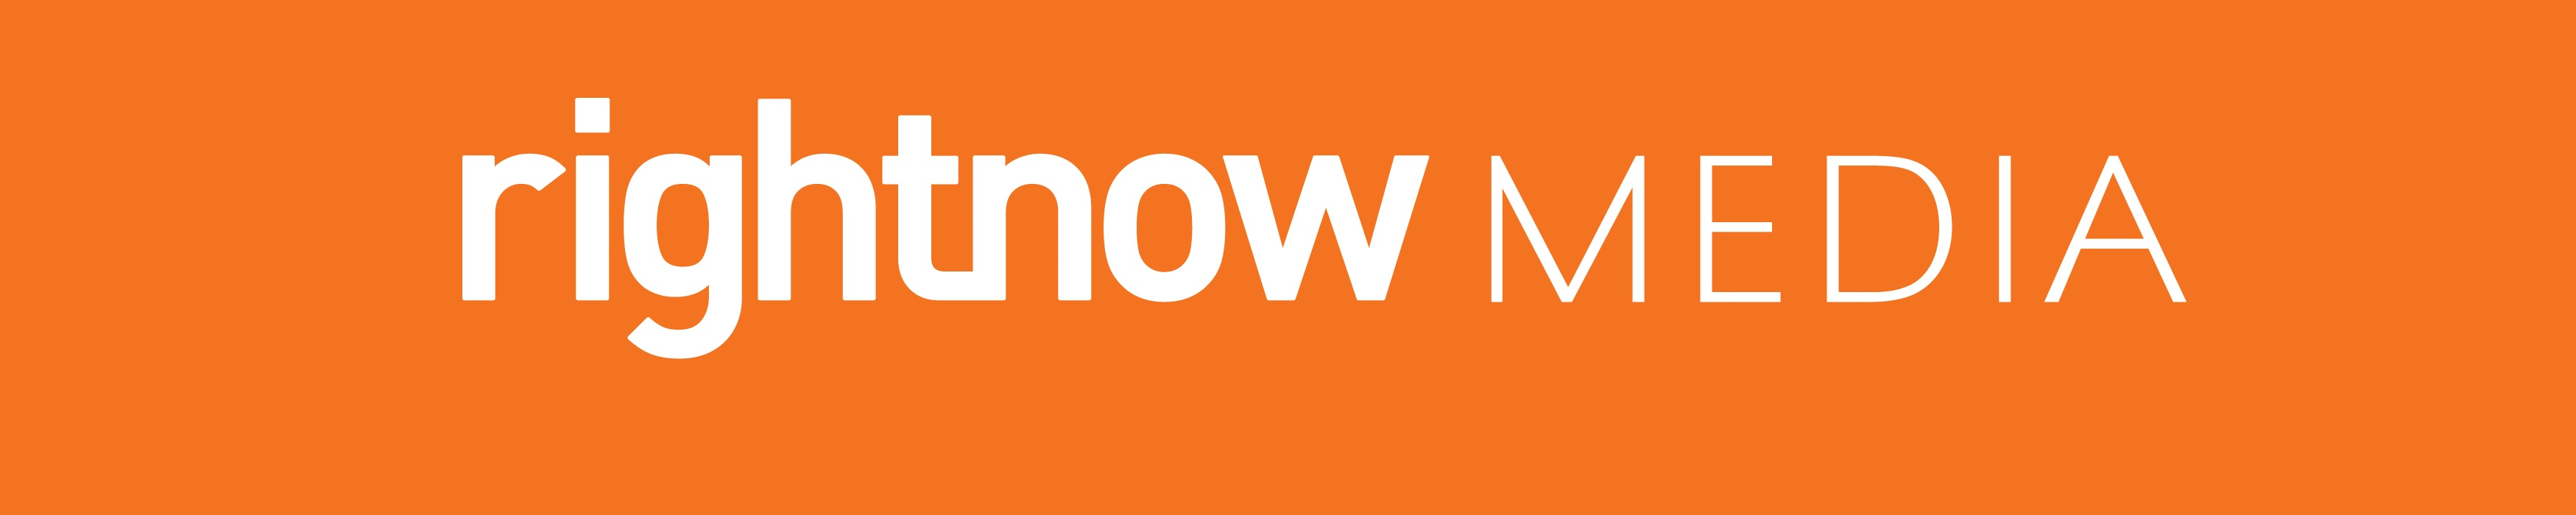 Rightnowmedia_Banner.png